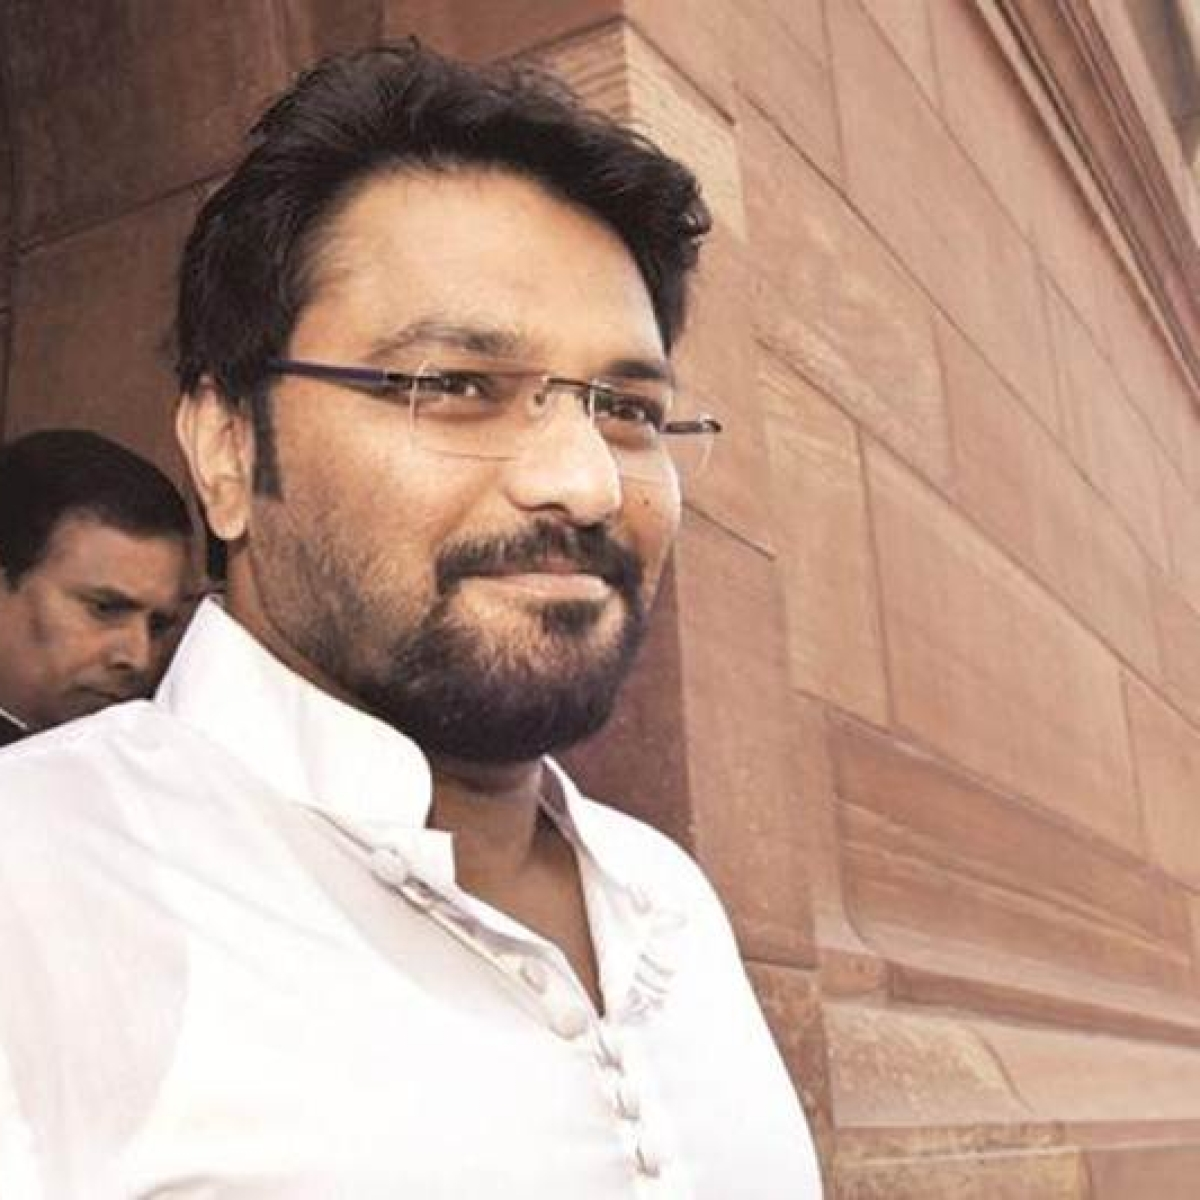 Union Minister Babul Supriyo tests positive for COVID-19 for the second time